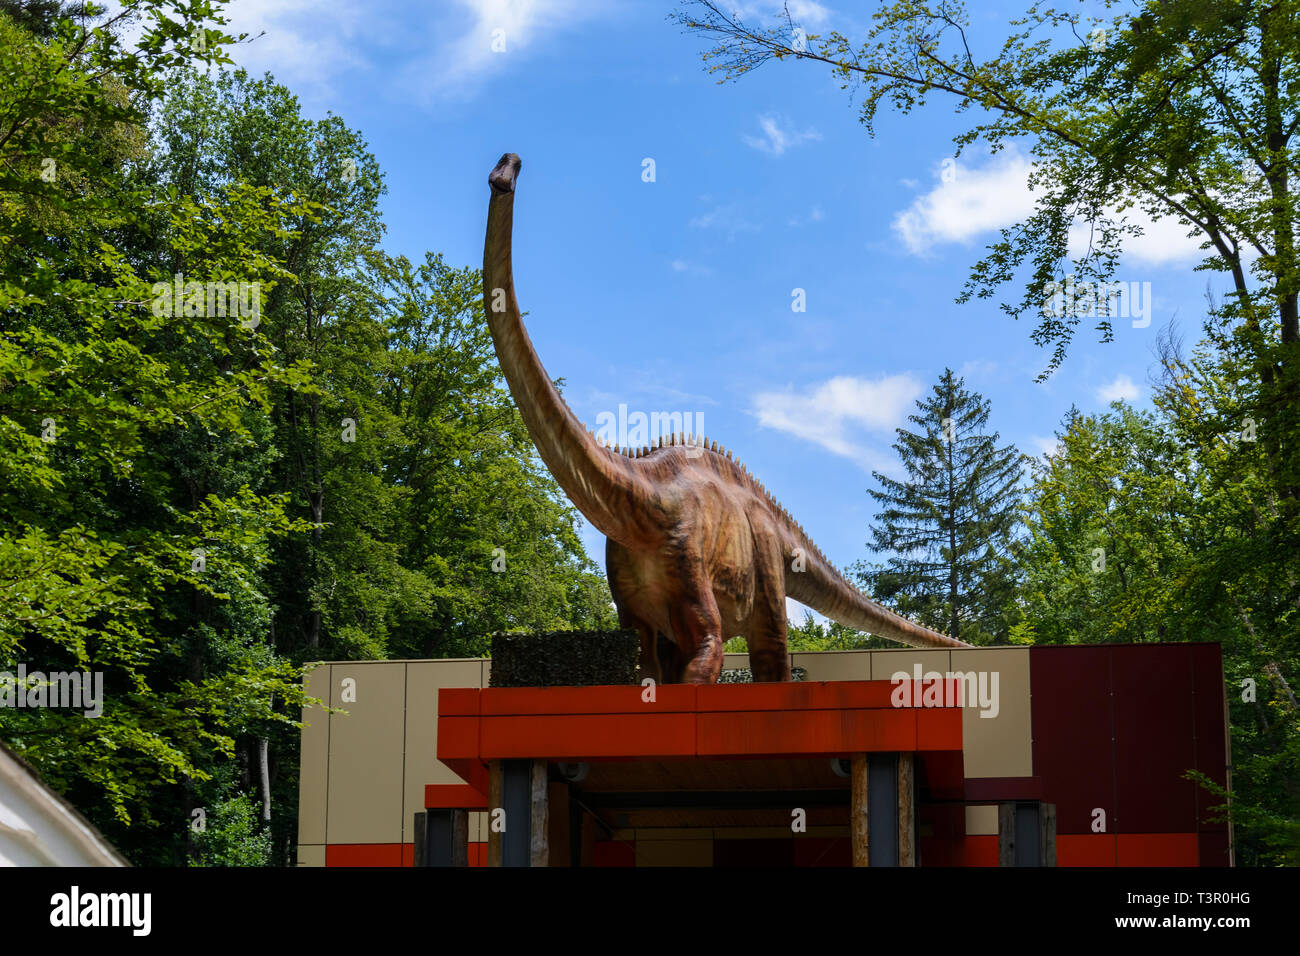 big dinosaur in a forest, guarding a entrance Stock Photo